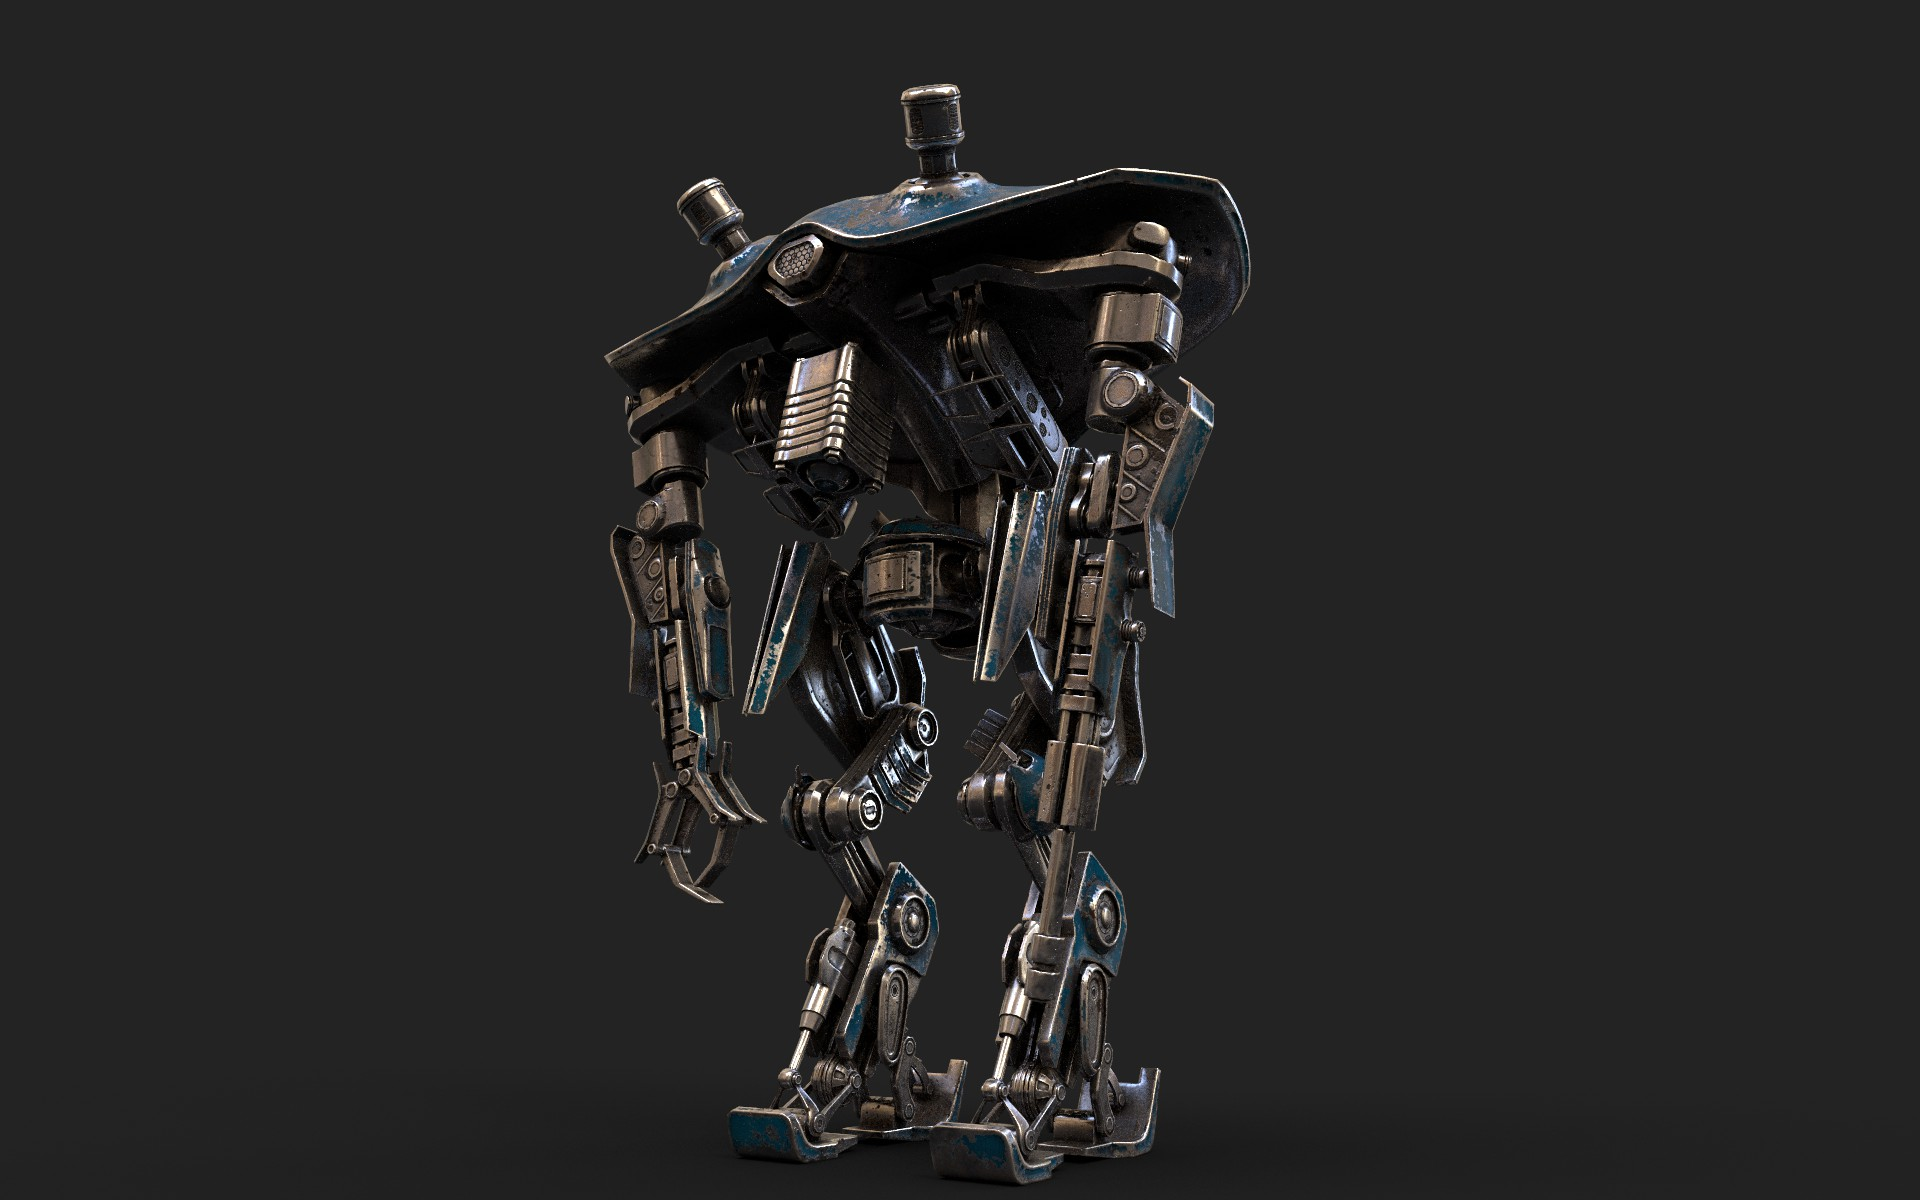 heavy robot vex700 3d model 3ds max fbx obj 279579